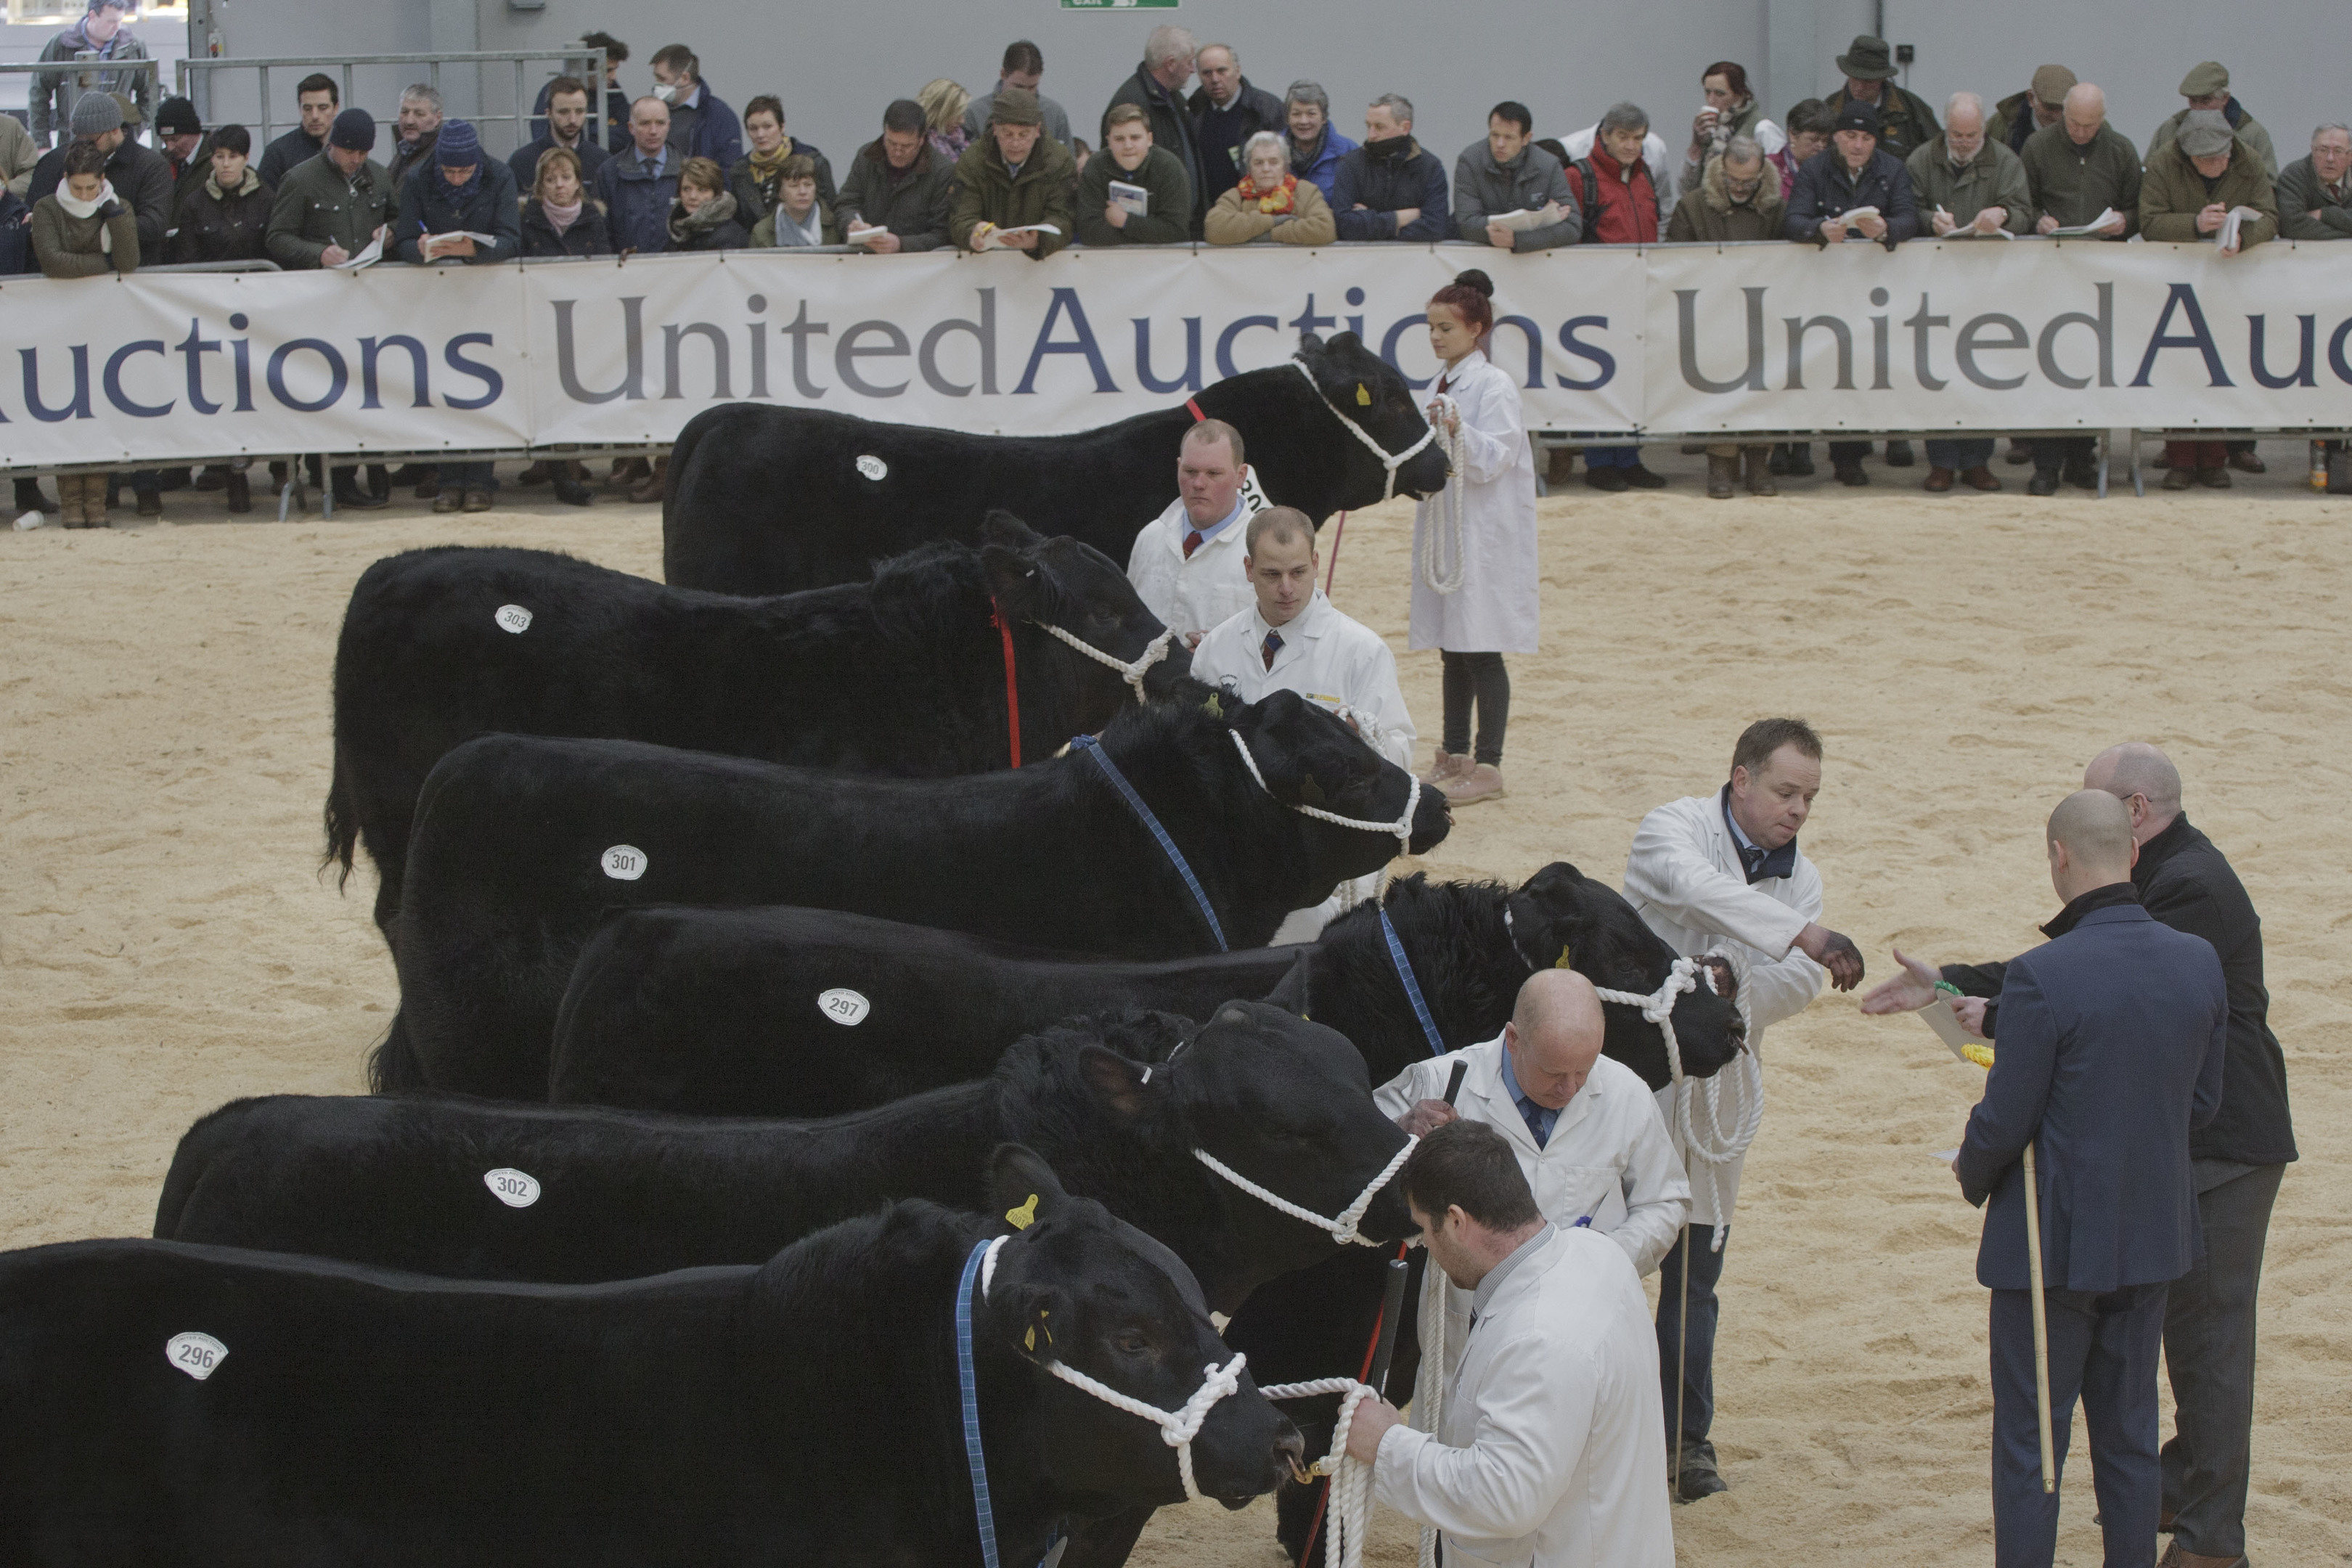 Aberdeen-Angus at the Stirling Bull Sales last week